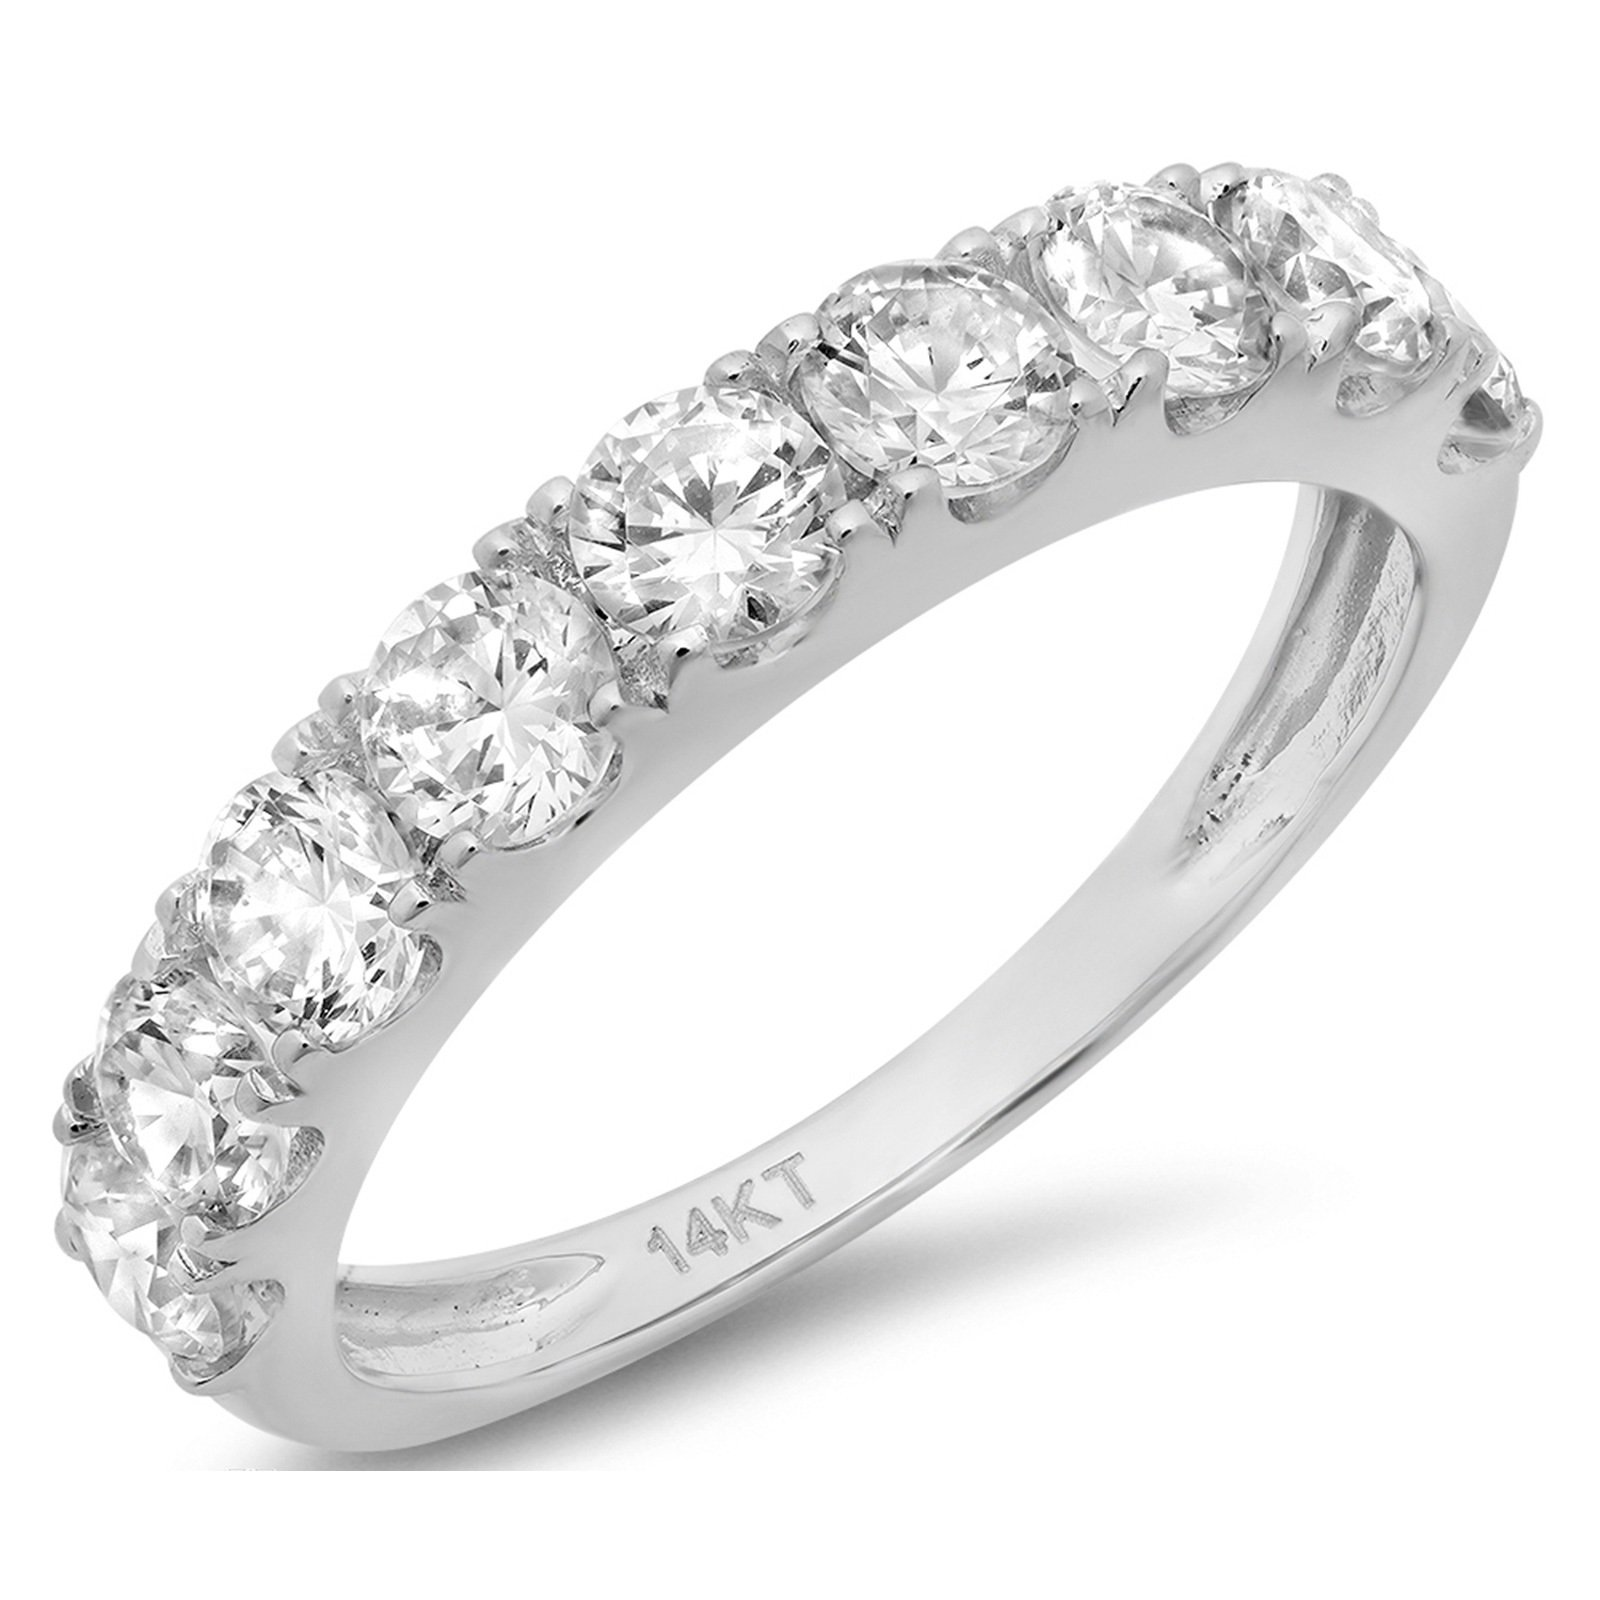 Clara Pucci 1.4 CT Round Cut CZ pave set Bridal Wedding Engagement Band Ring 14kt White Gold, Size 8.5 by Clara Pucci